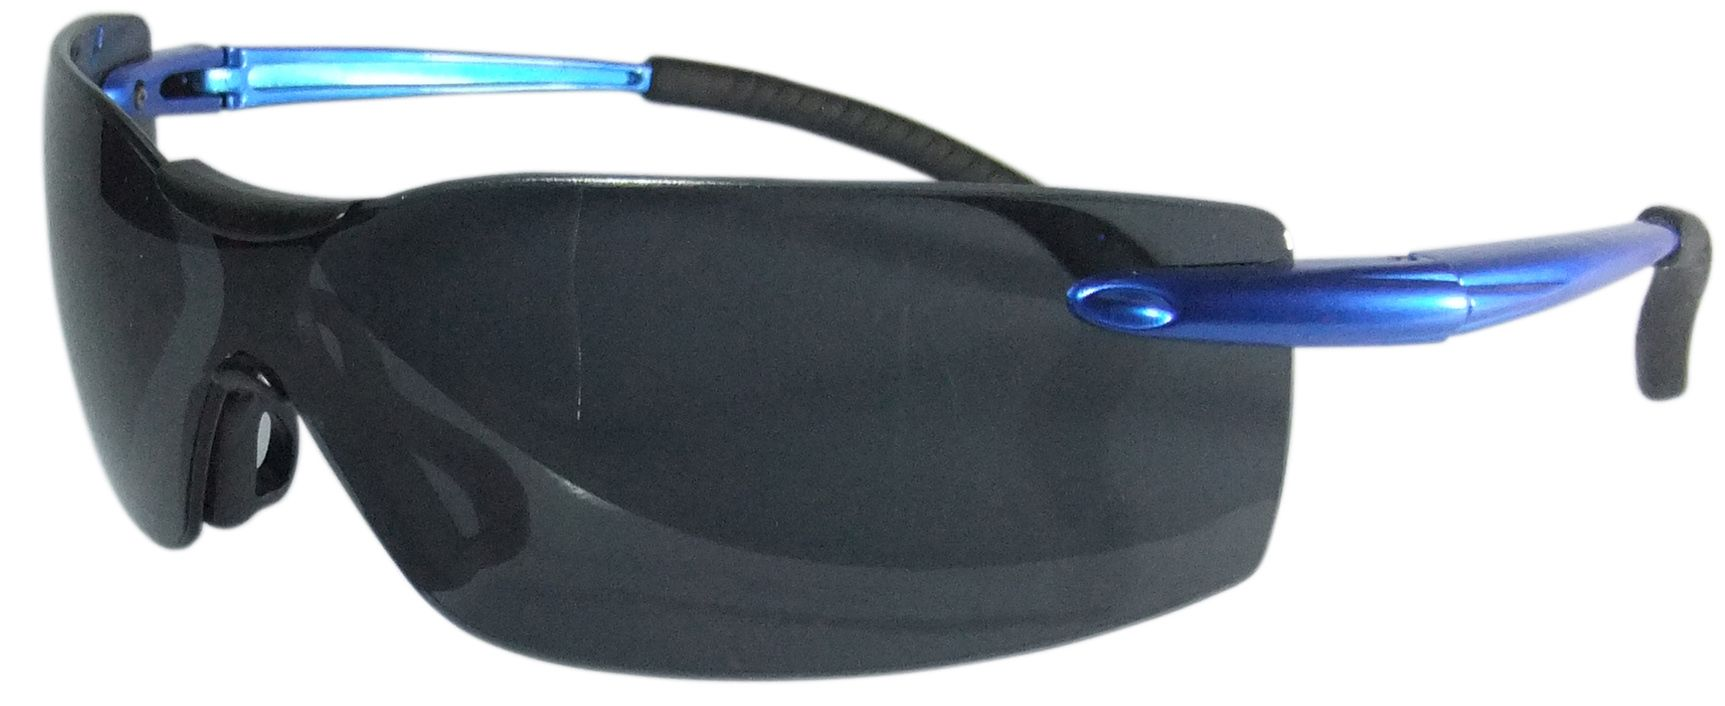 Smoked Safety Glasses - Blue Arms